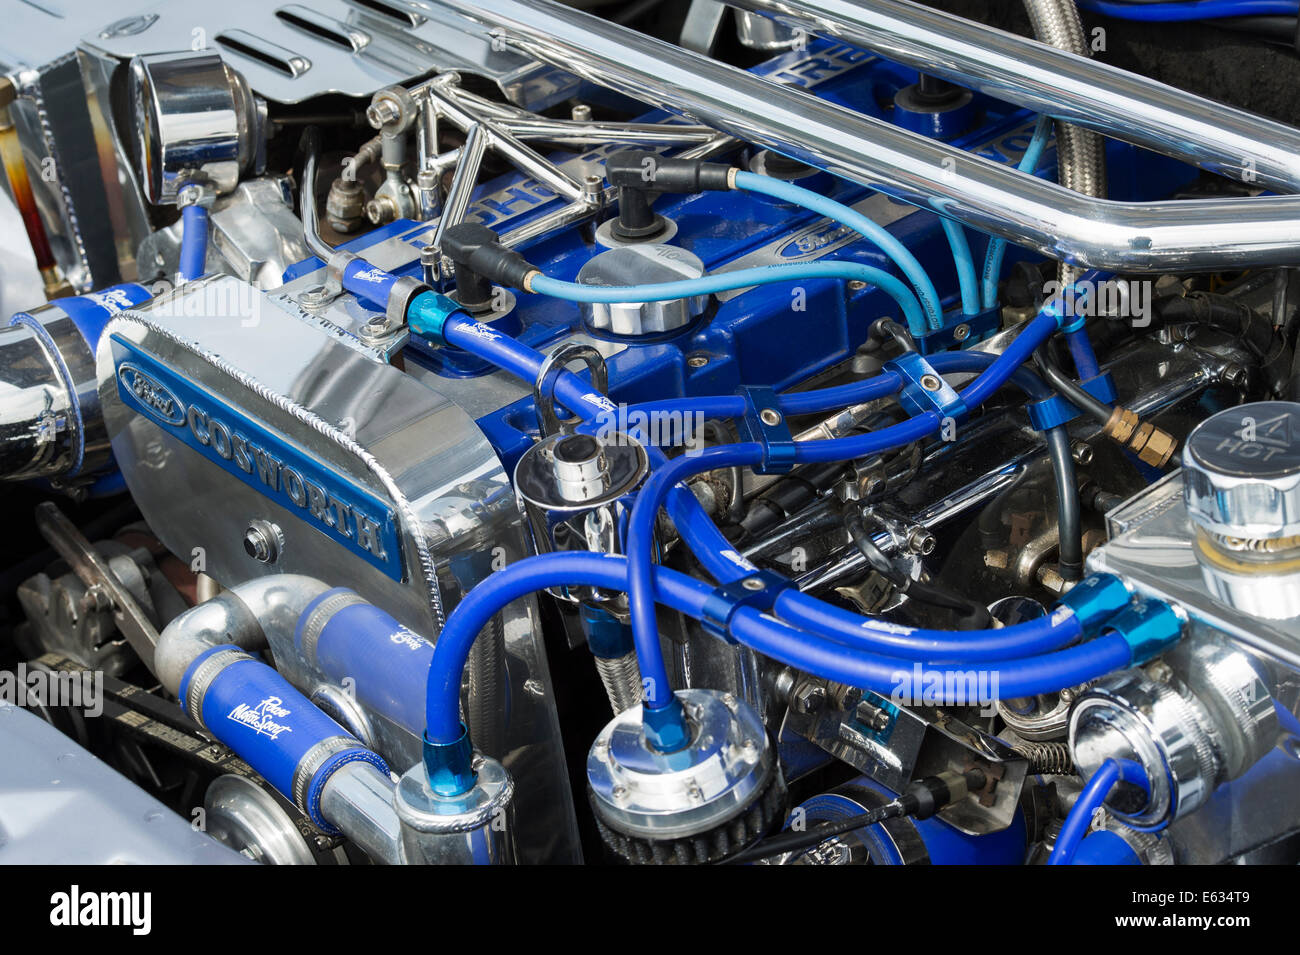 Ford Cosworth Engine Stock Photo: 72599081 - Alamy